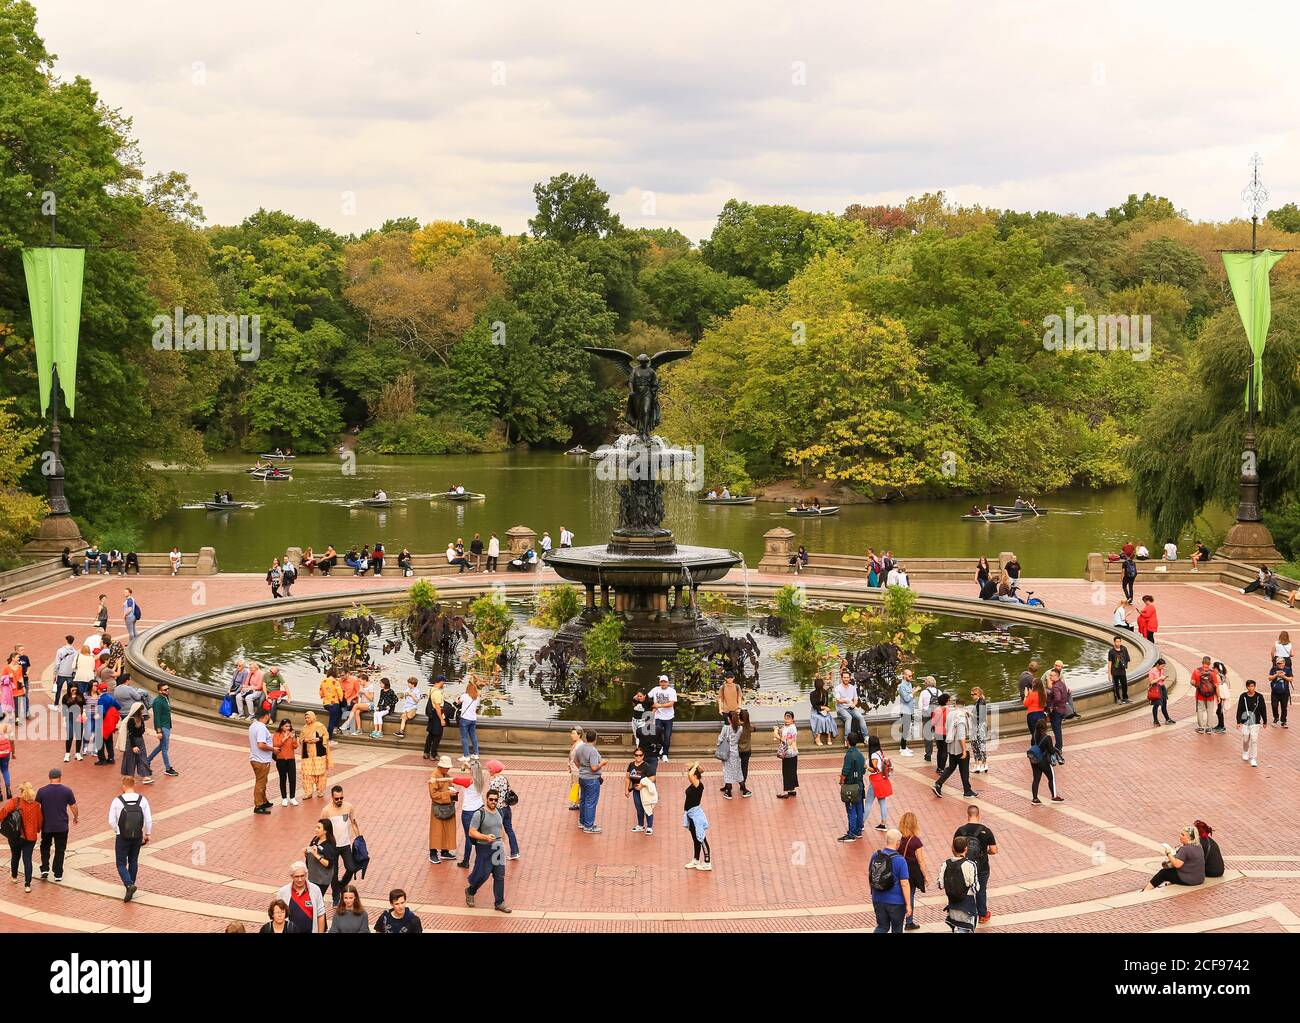 New York City, USA - October 7, 2019: Many People are around the Bethesda Fountain on the Terrace in the Central Park. Stock Photo